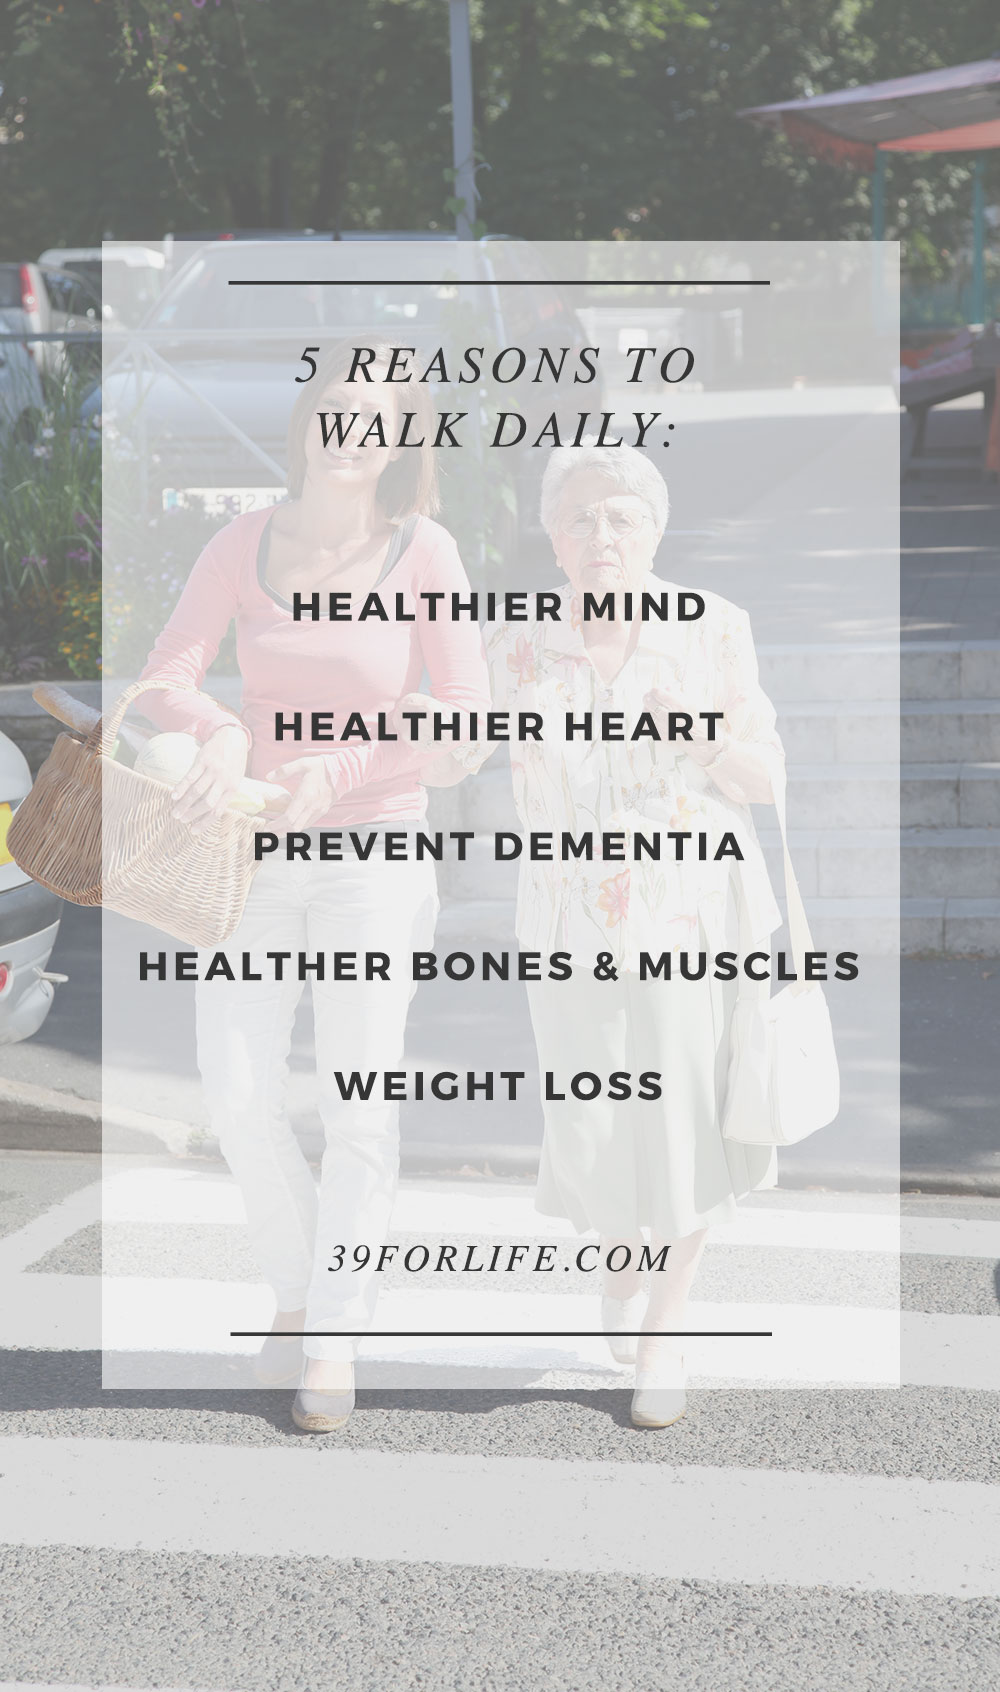 Get your 10,000 steps every day. Here are the biggest reasons to get up and walk every day.